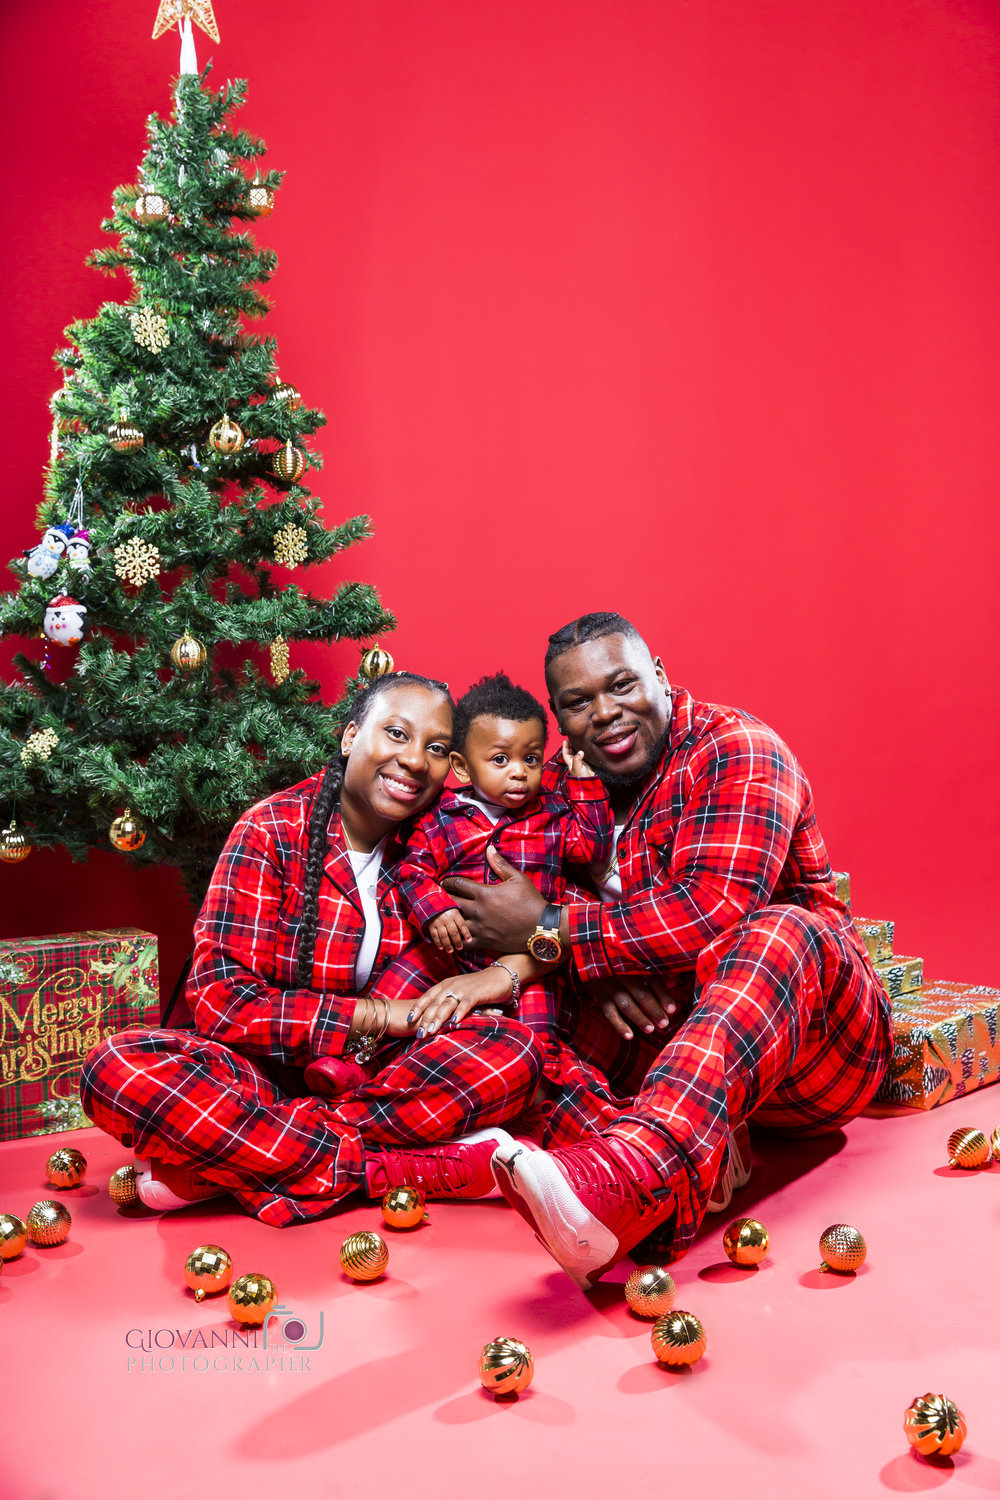 314A9780-12-16-18 - Sie - Chavin - Cannon - Christmas Photo Shoot - Boston Sudio Rental.jpg